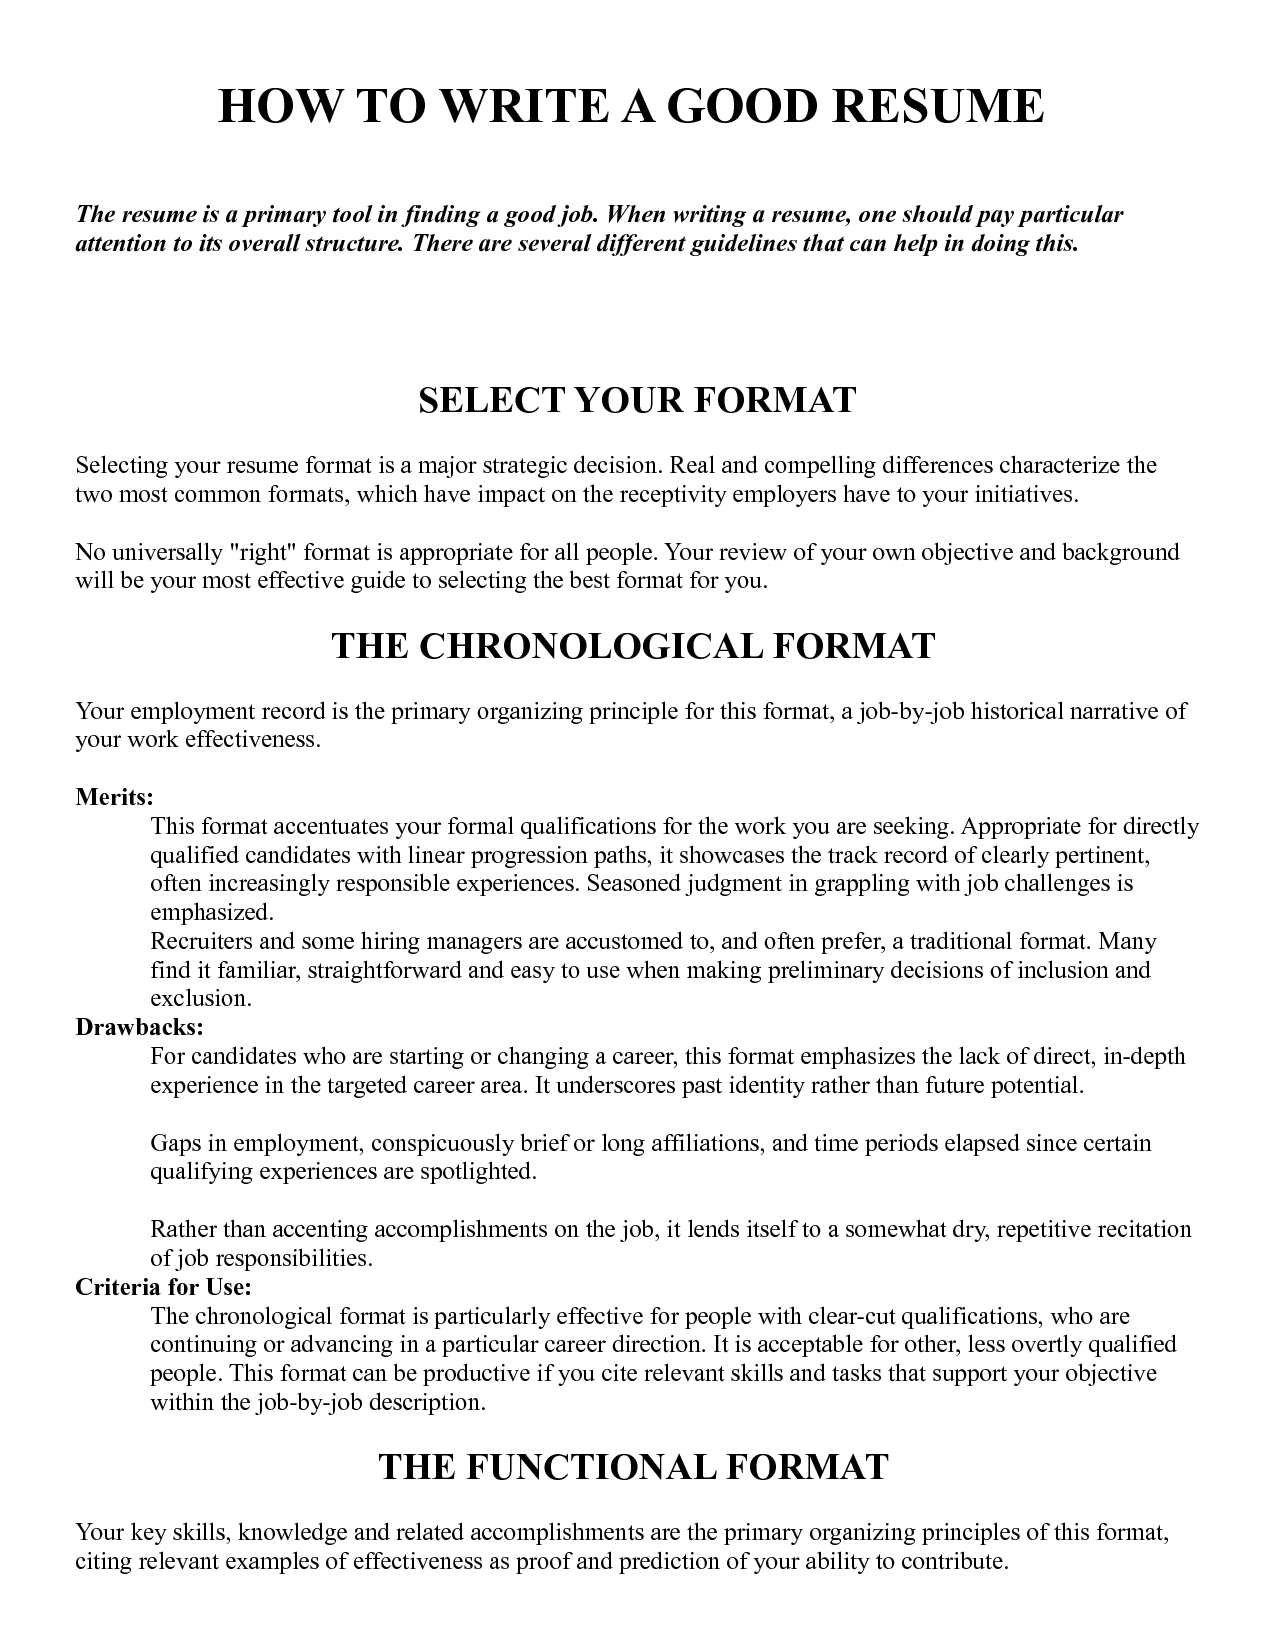 how to write a proper resume tk category curriculum vitae